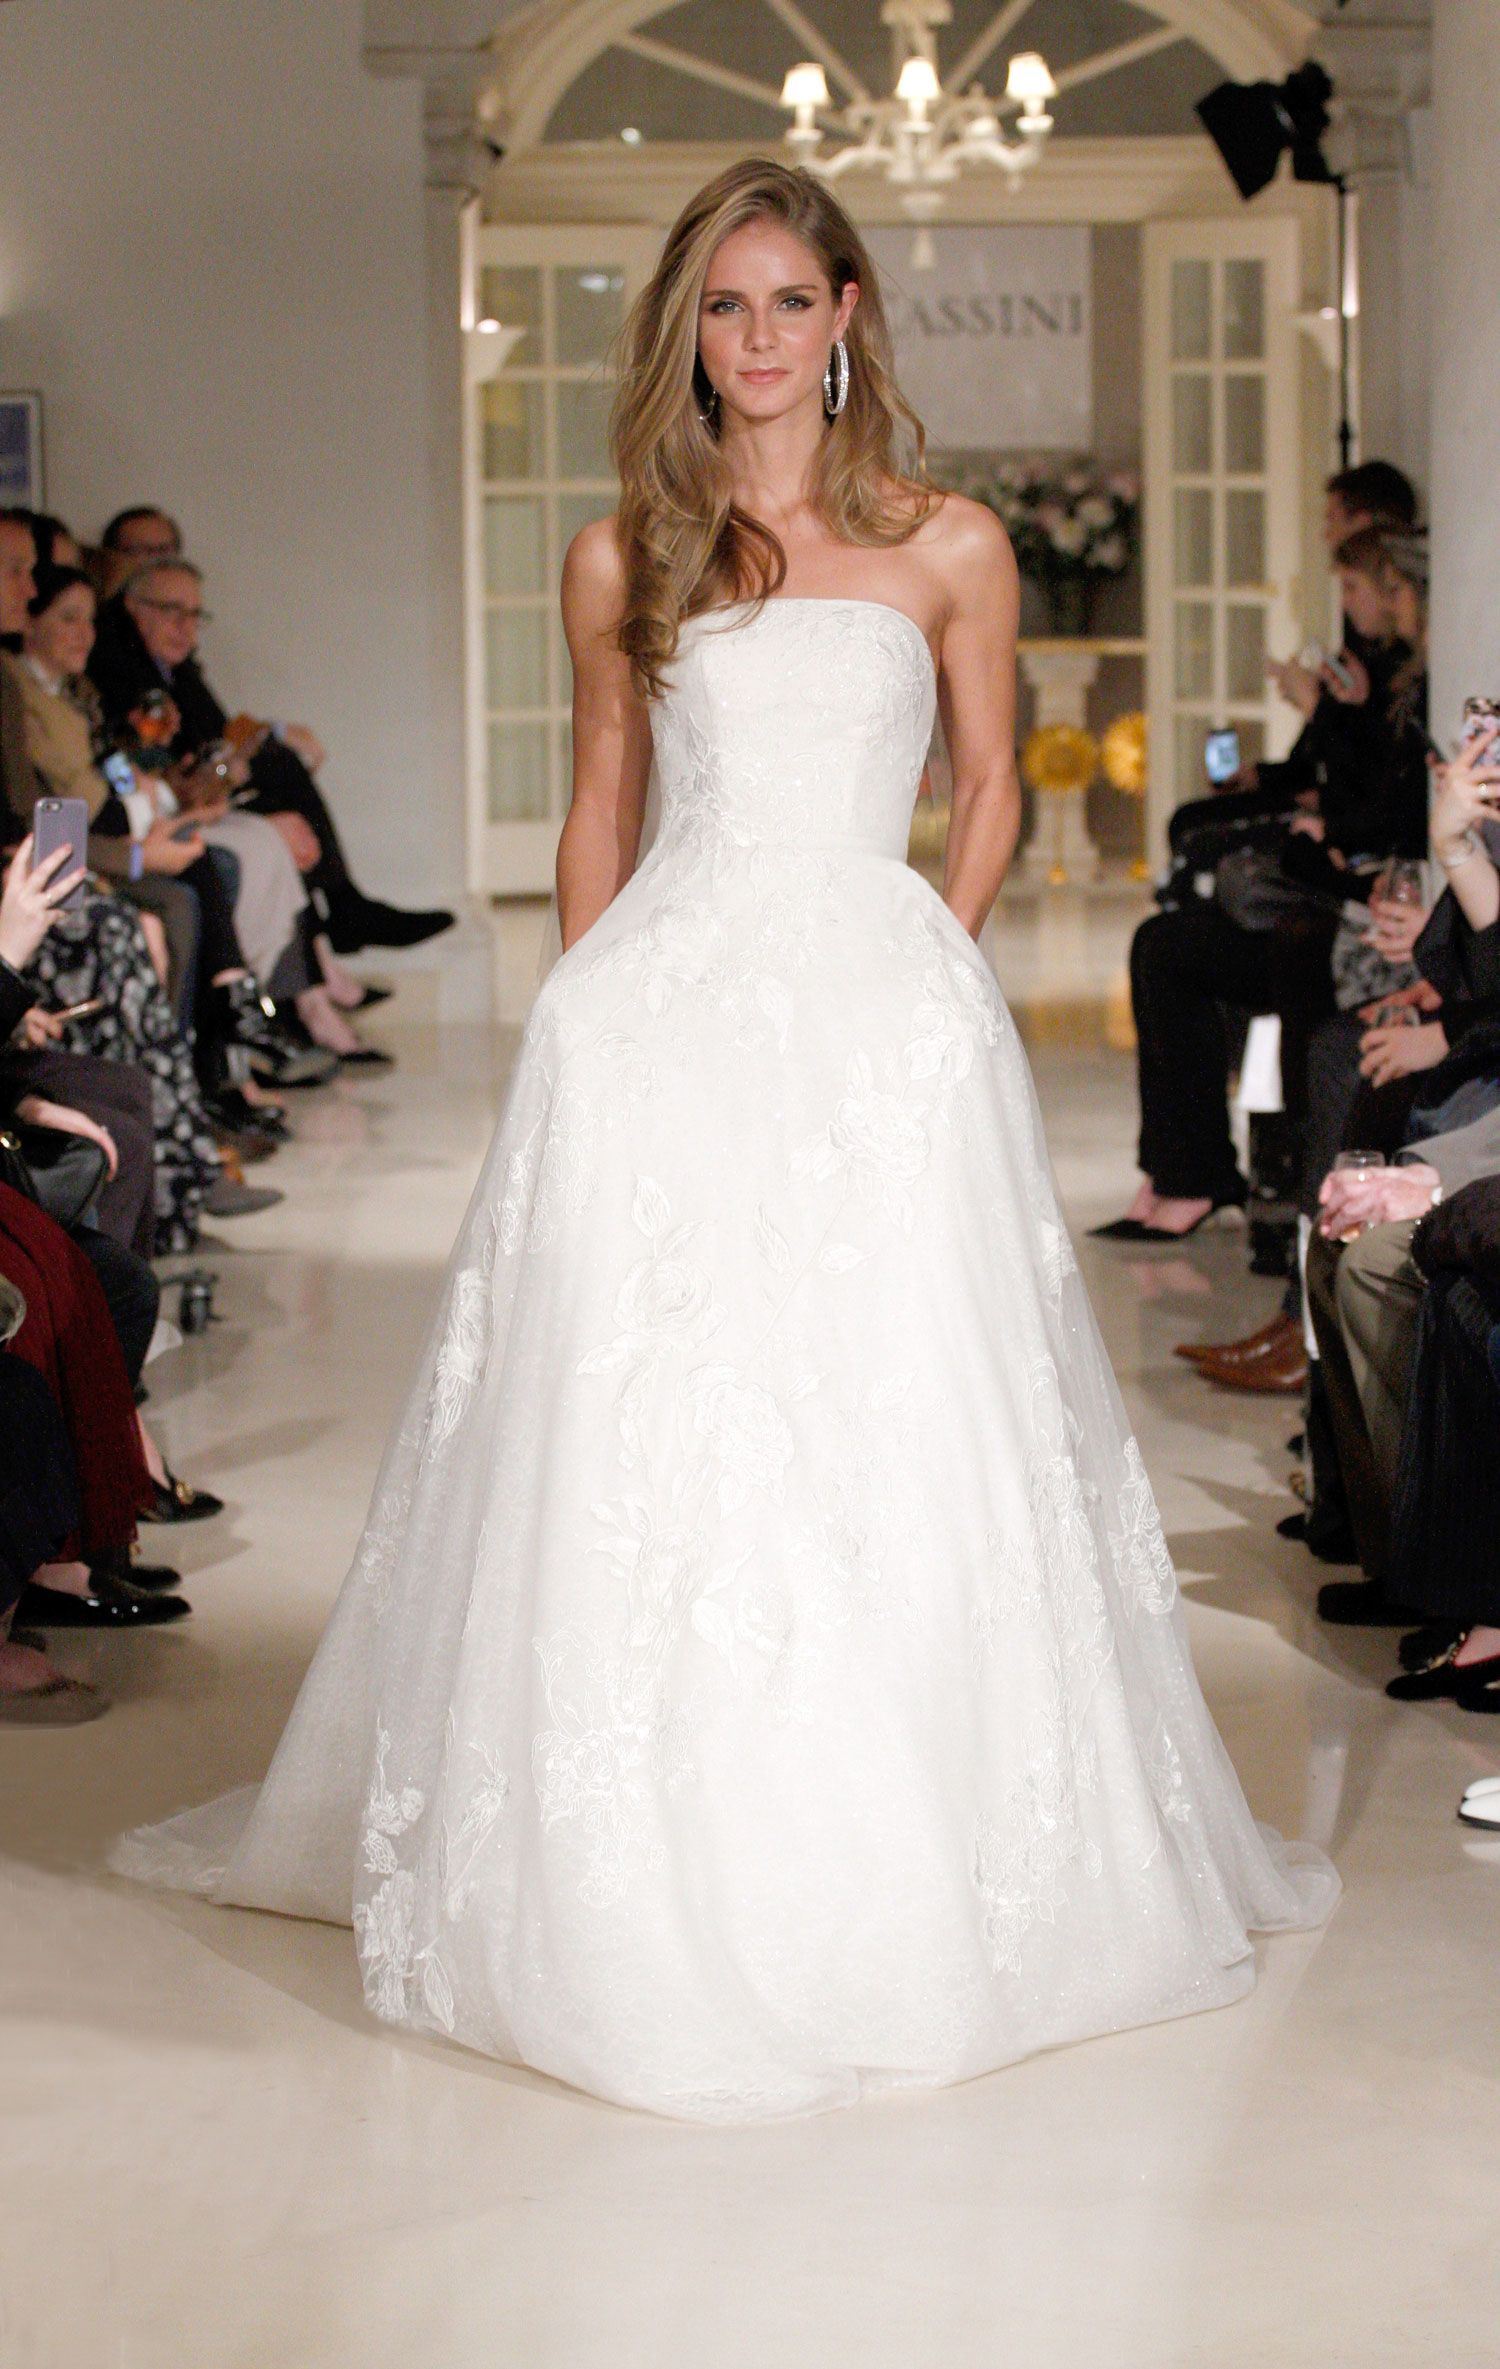 a0a0522a6112 Oleg Cassini ball gown strapless dress pockets royal wedding inspired  bridal gown